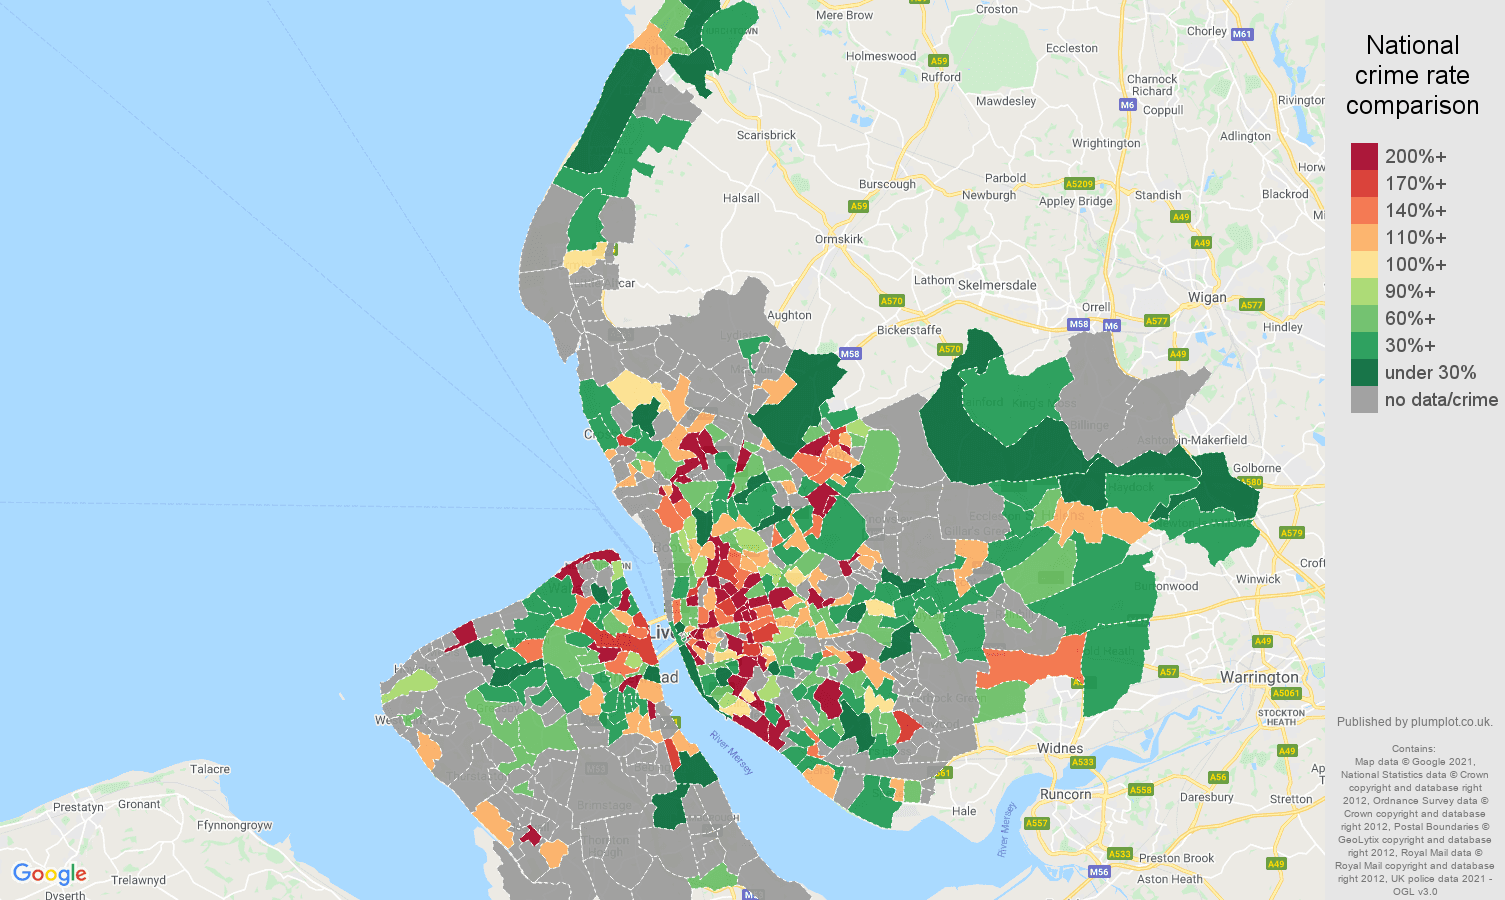 Merseyside robbery crime rate comparison map